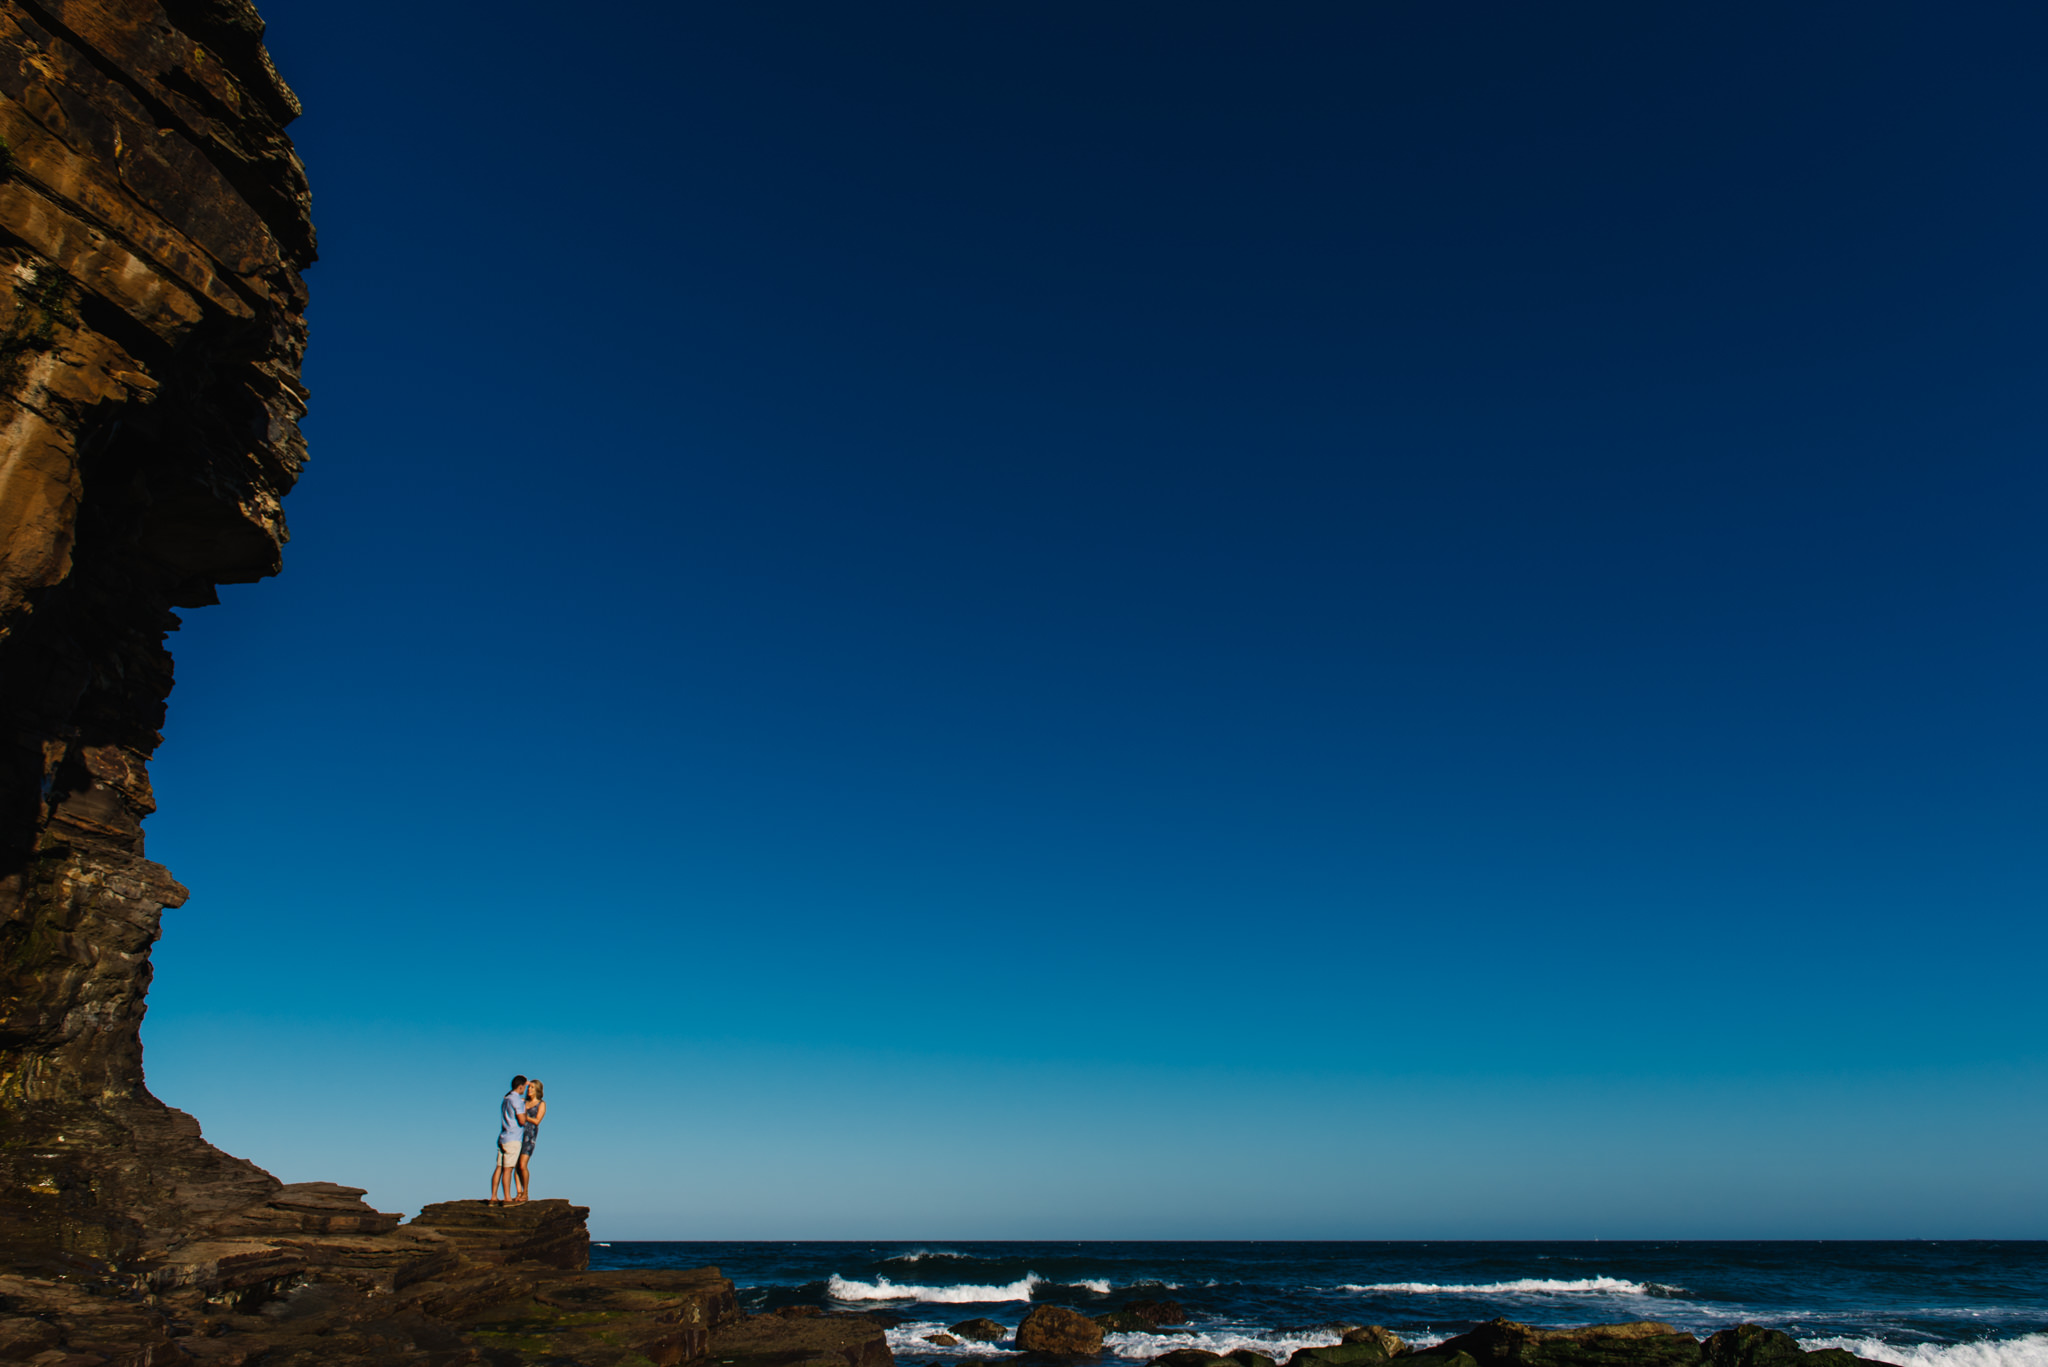 Engaged couple on rock outcropping at Turimetta beach